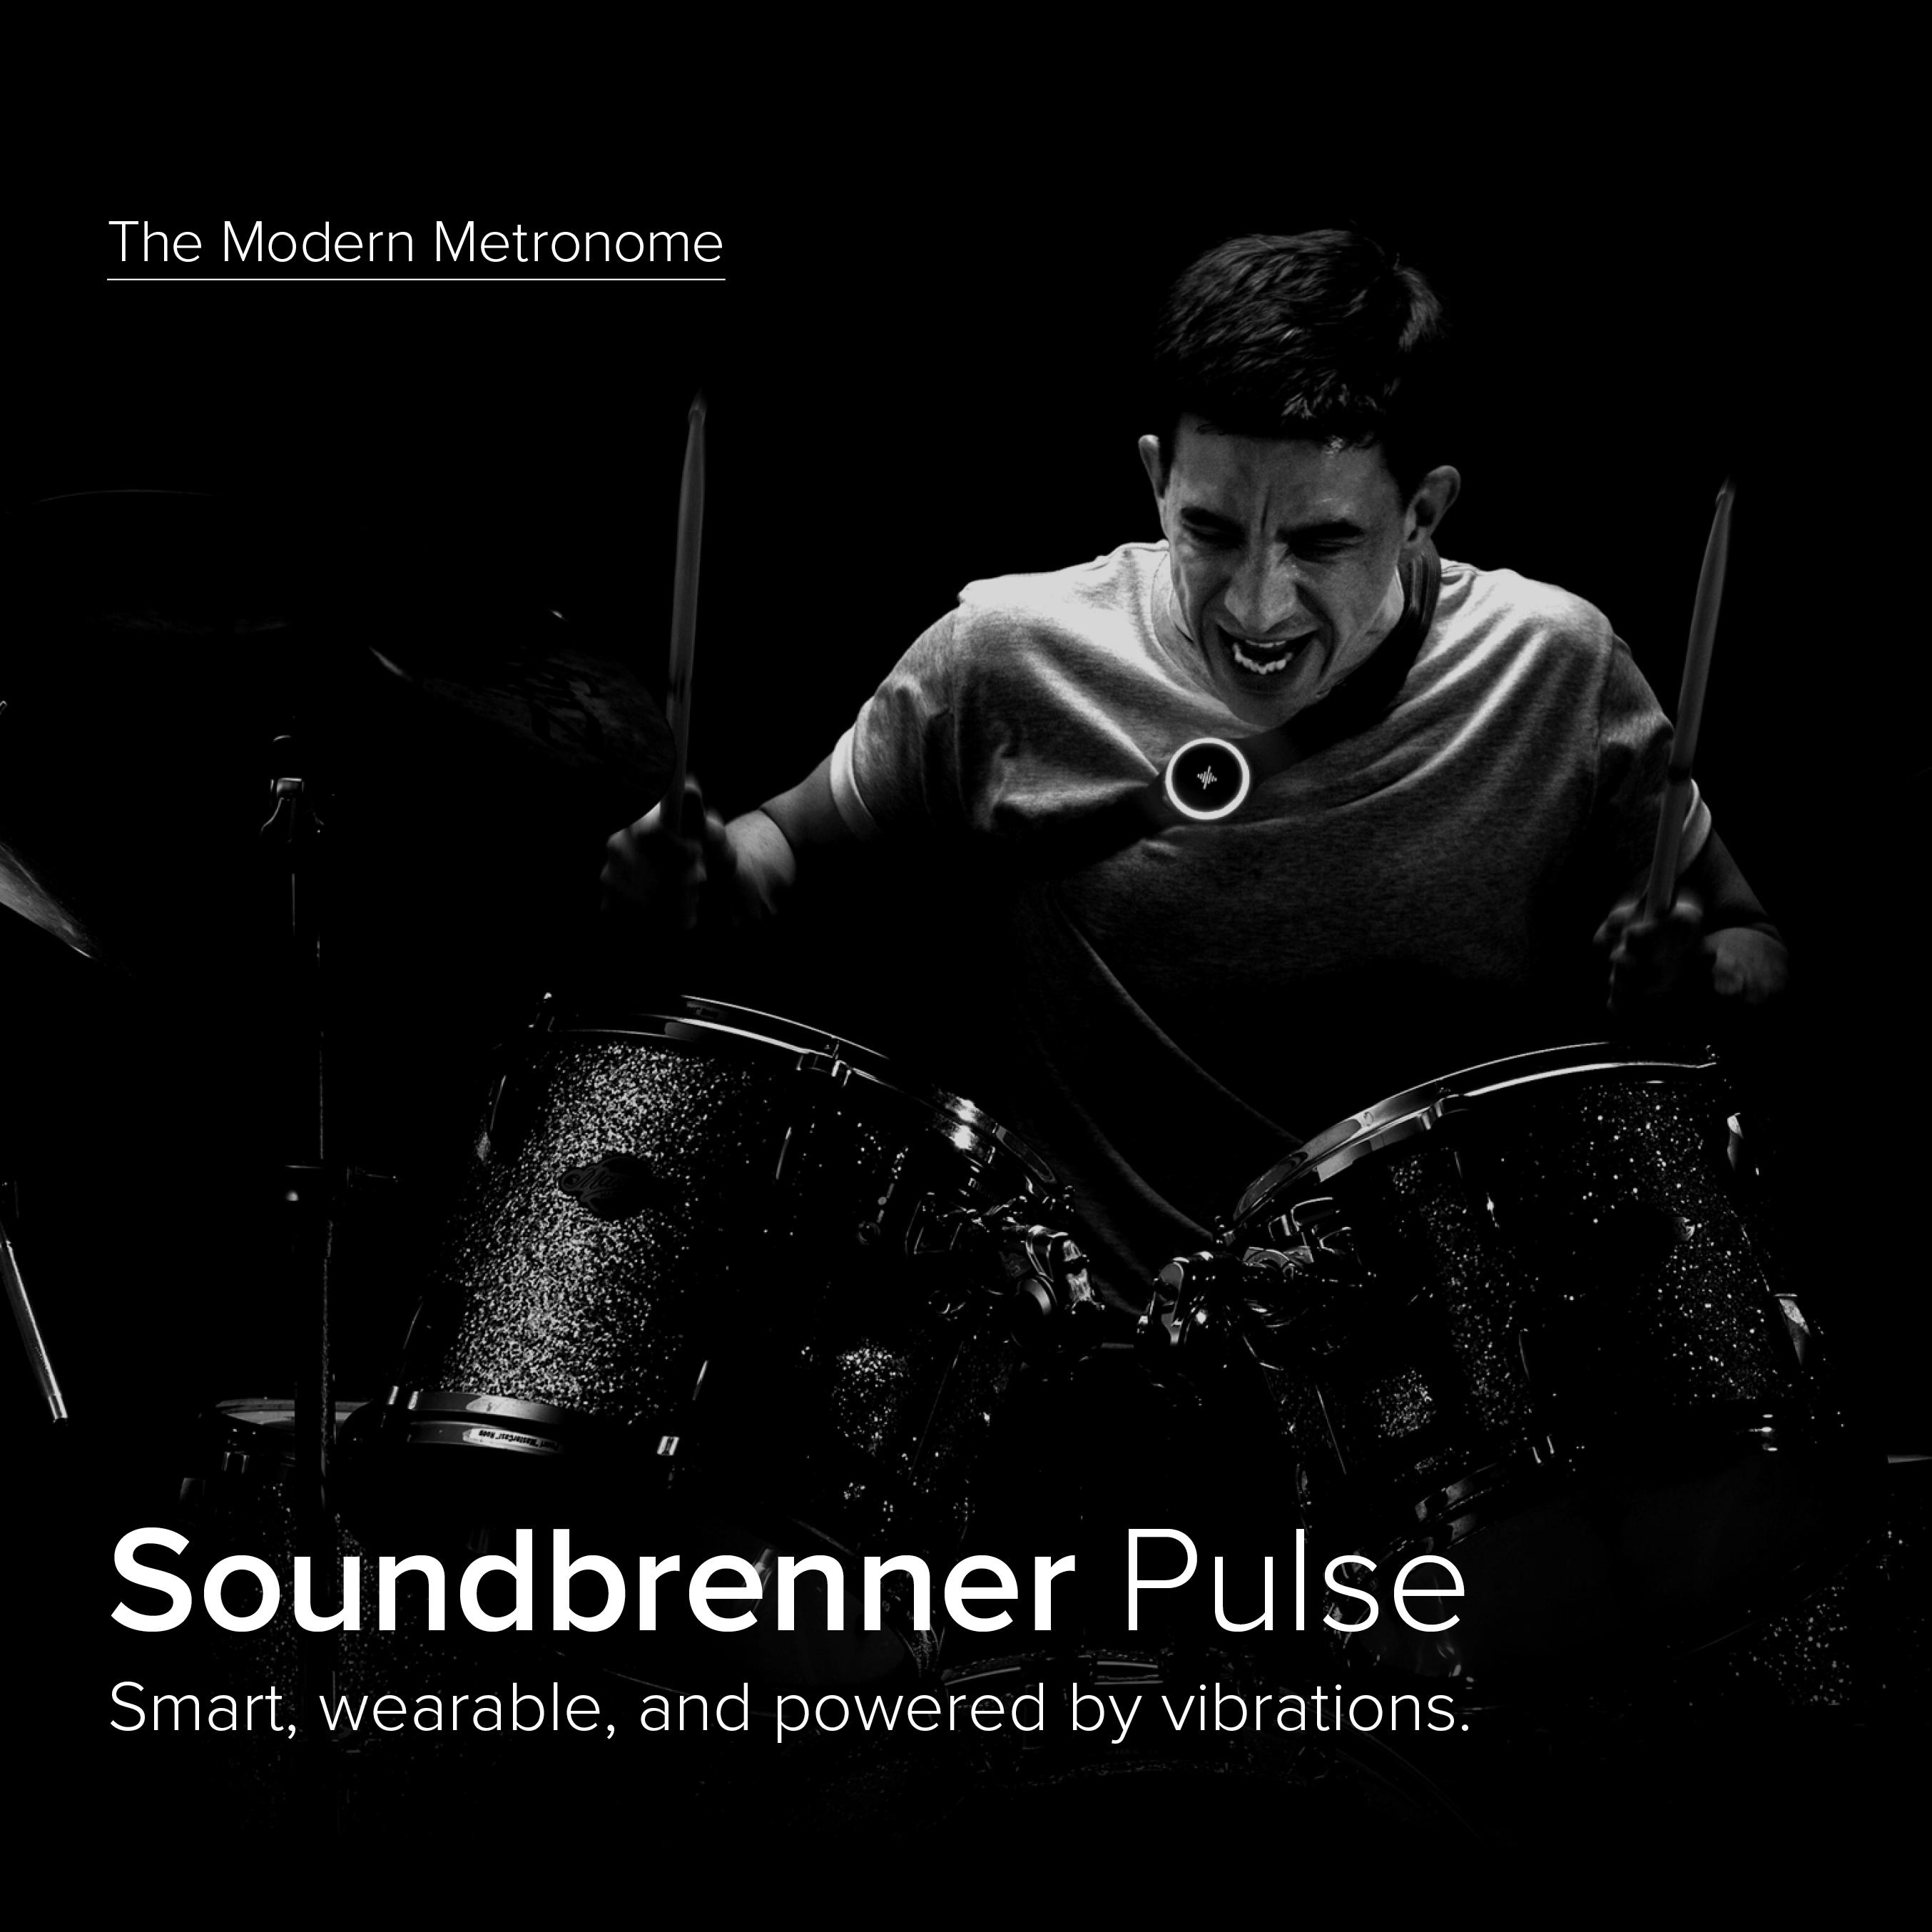 Official Soundbrenner Pulse Smart, Vibrating & Wearable Metronome For All  Instruments (Guitar, Piano, Drums) Tap Tempo (BPM) + Visual Beat Counting